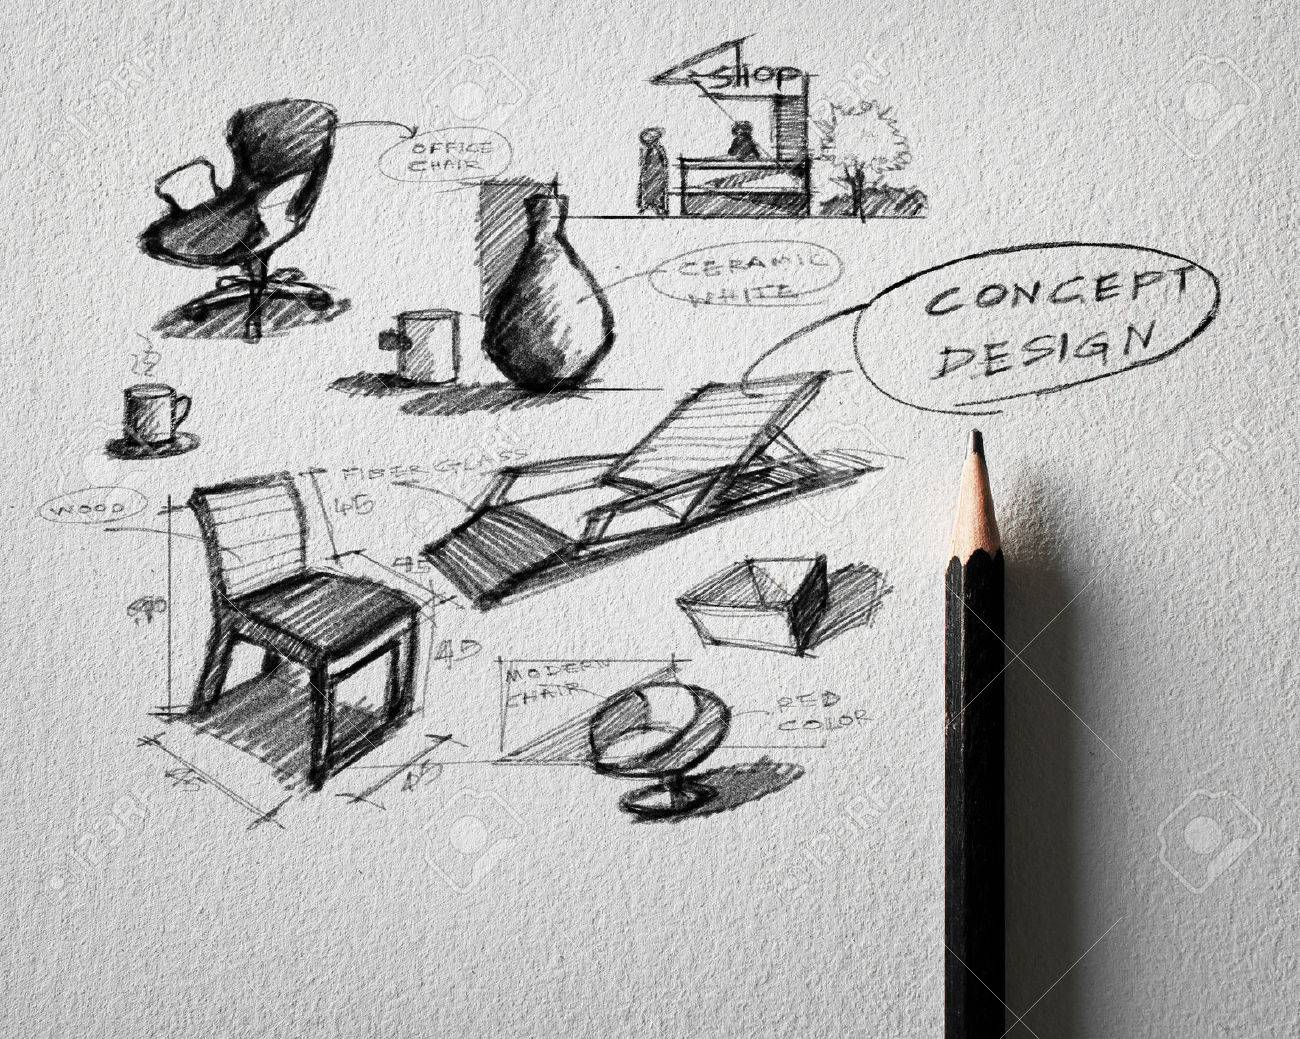 Pencil sketch of furniture concept design on white paper stock photo 23468652